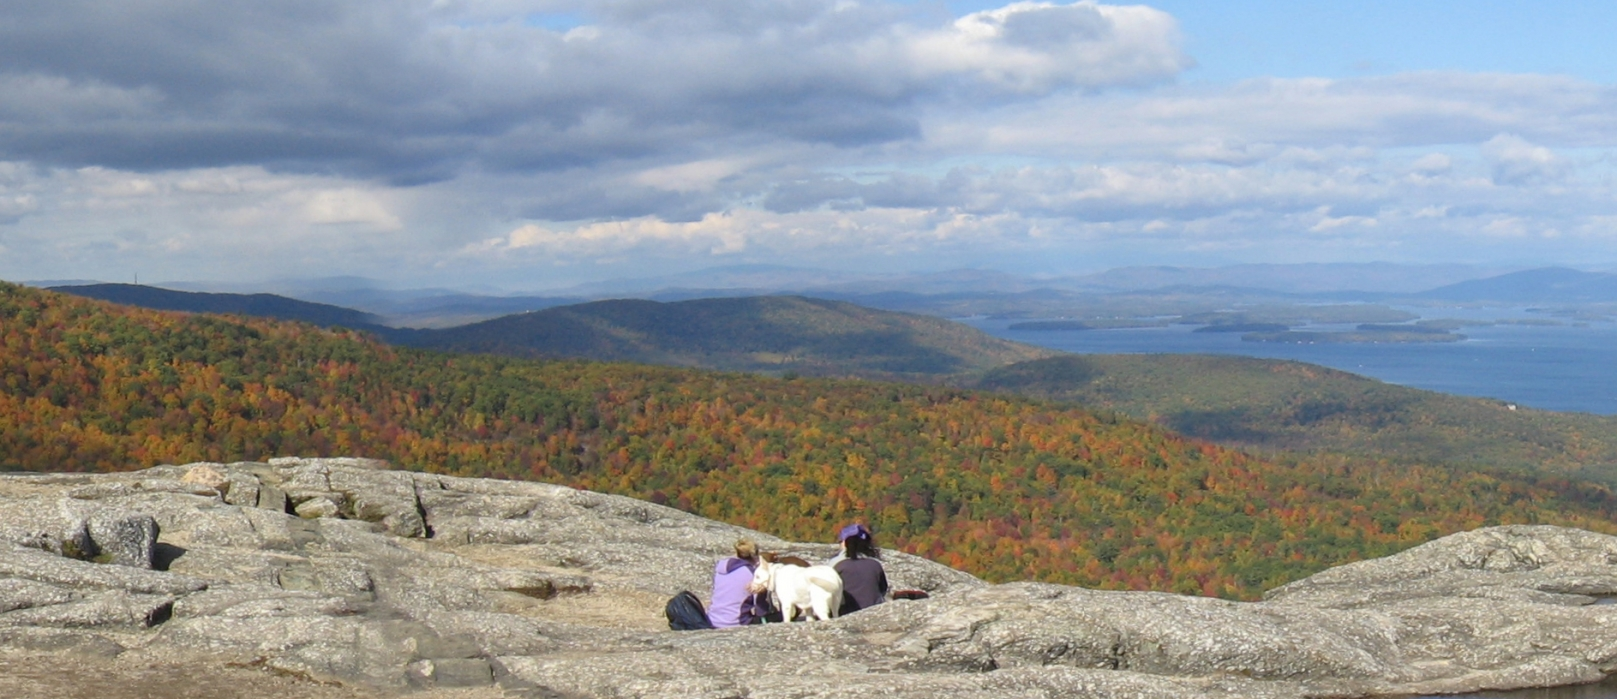 A view from the summit of Mount Major overlooking Lake Winnipesaukee.